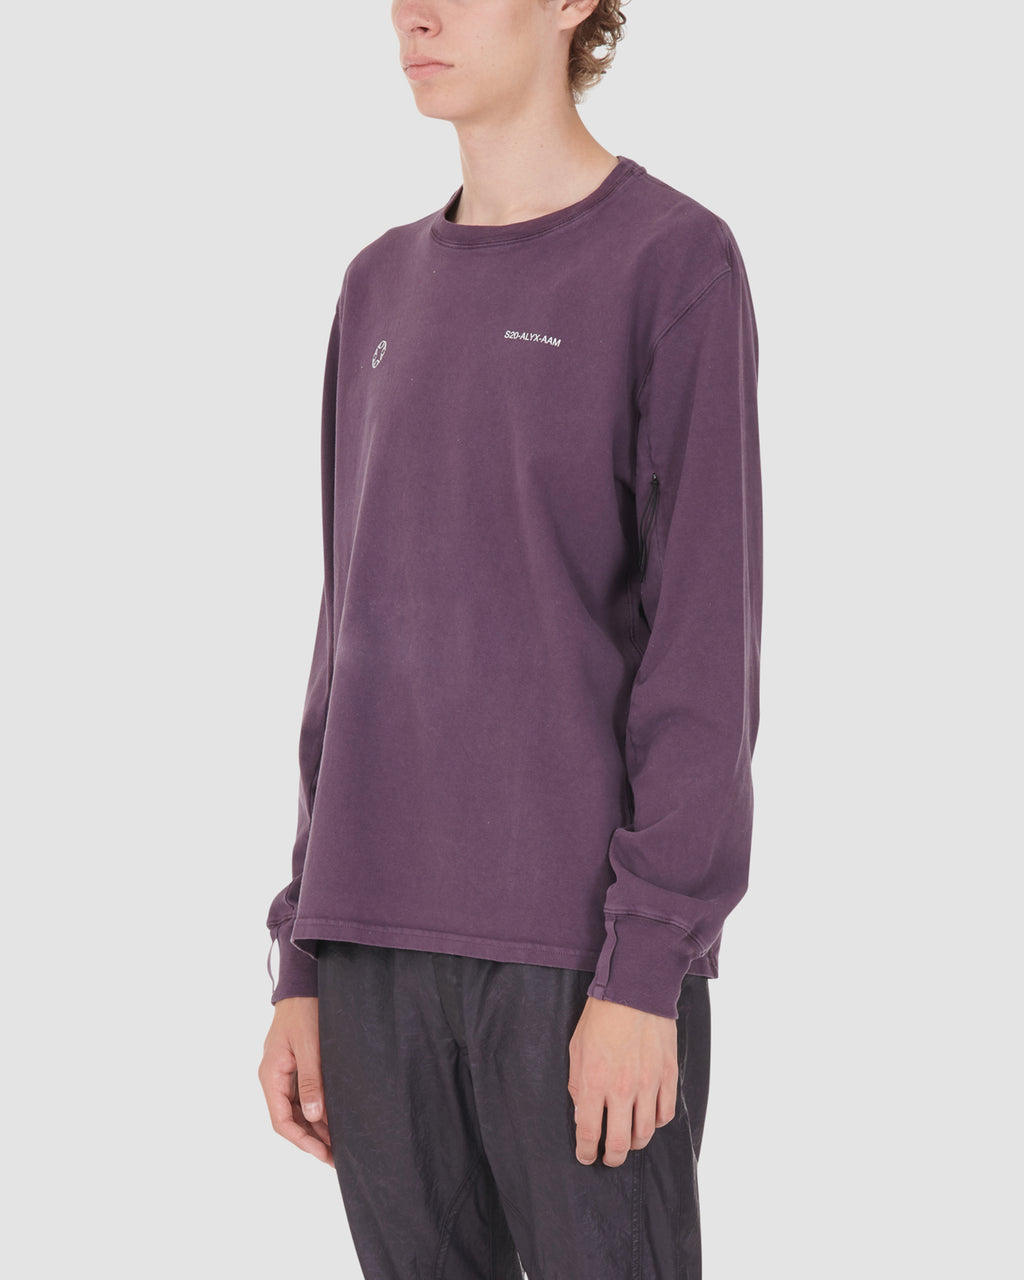 1017 ALYX 9SM | LS TEE W PRINT | T-Shirt | Google Shopping, Man, MEN, PURPLE, S20, S20 Drop II, T-Shirts